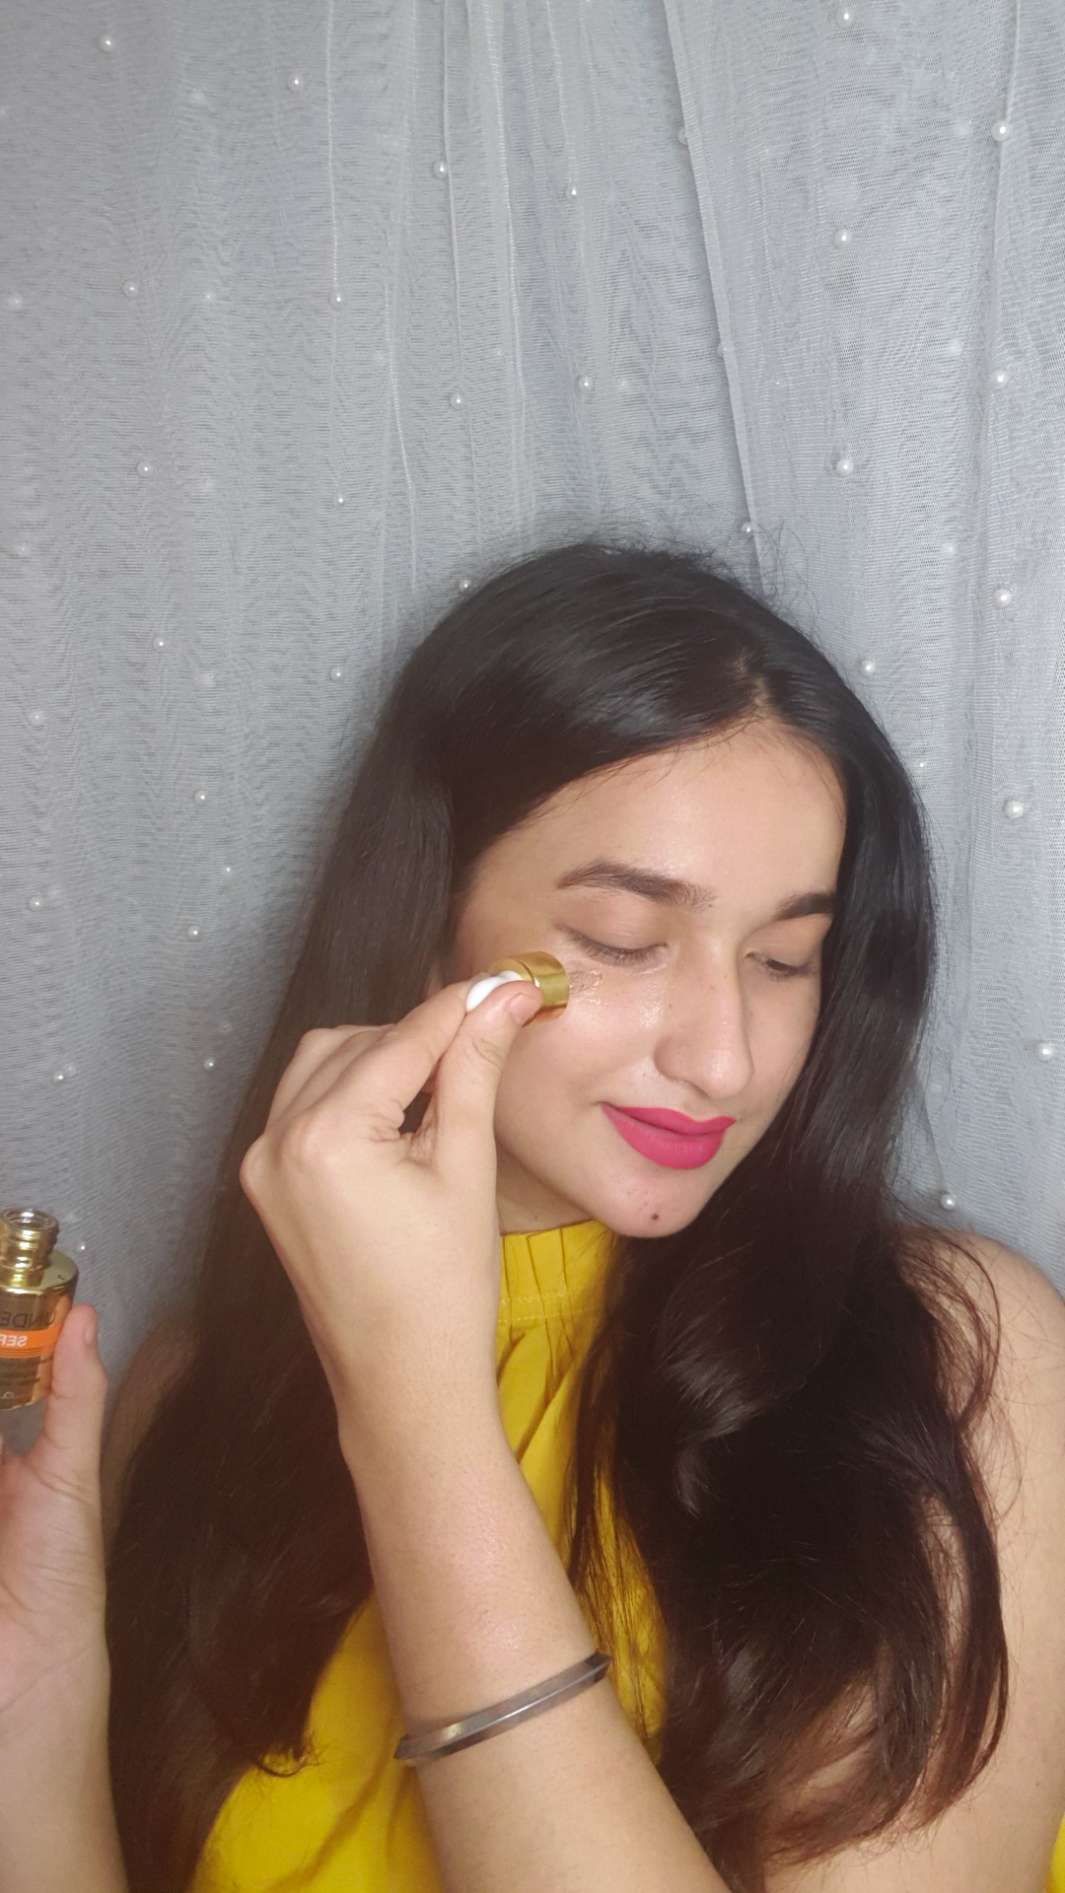 StBotanica Pure Radiance Under Eye Serum pic 2-Joy to the undereyes-By prarthanakapoor.official_